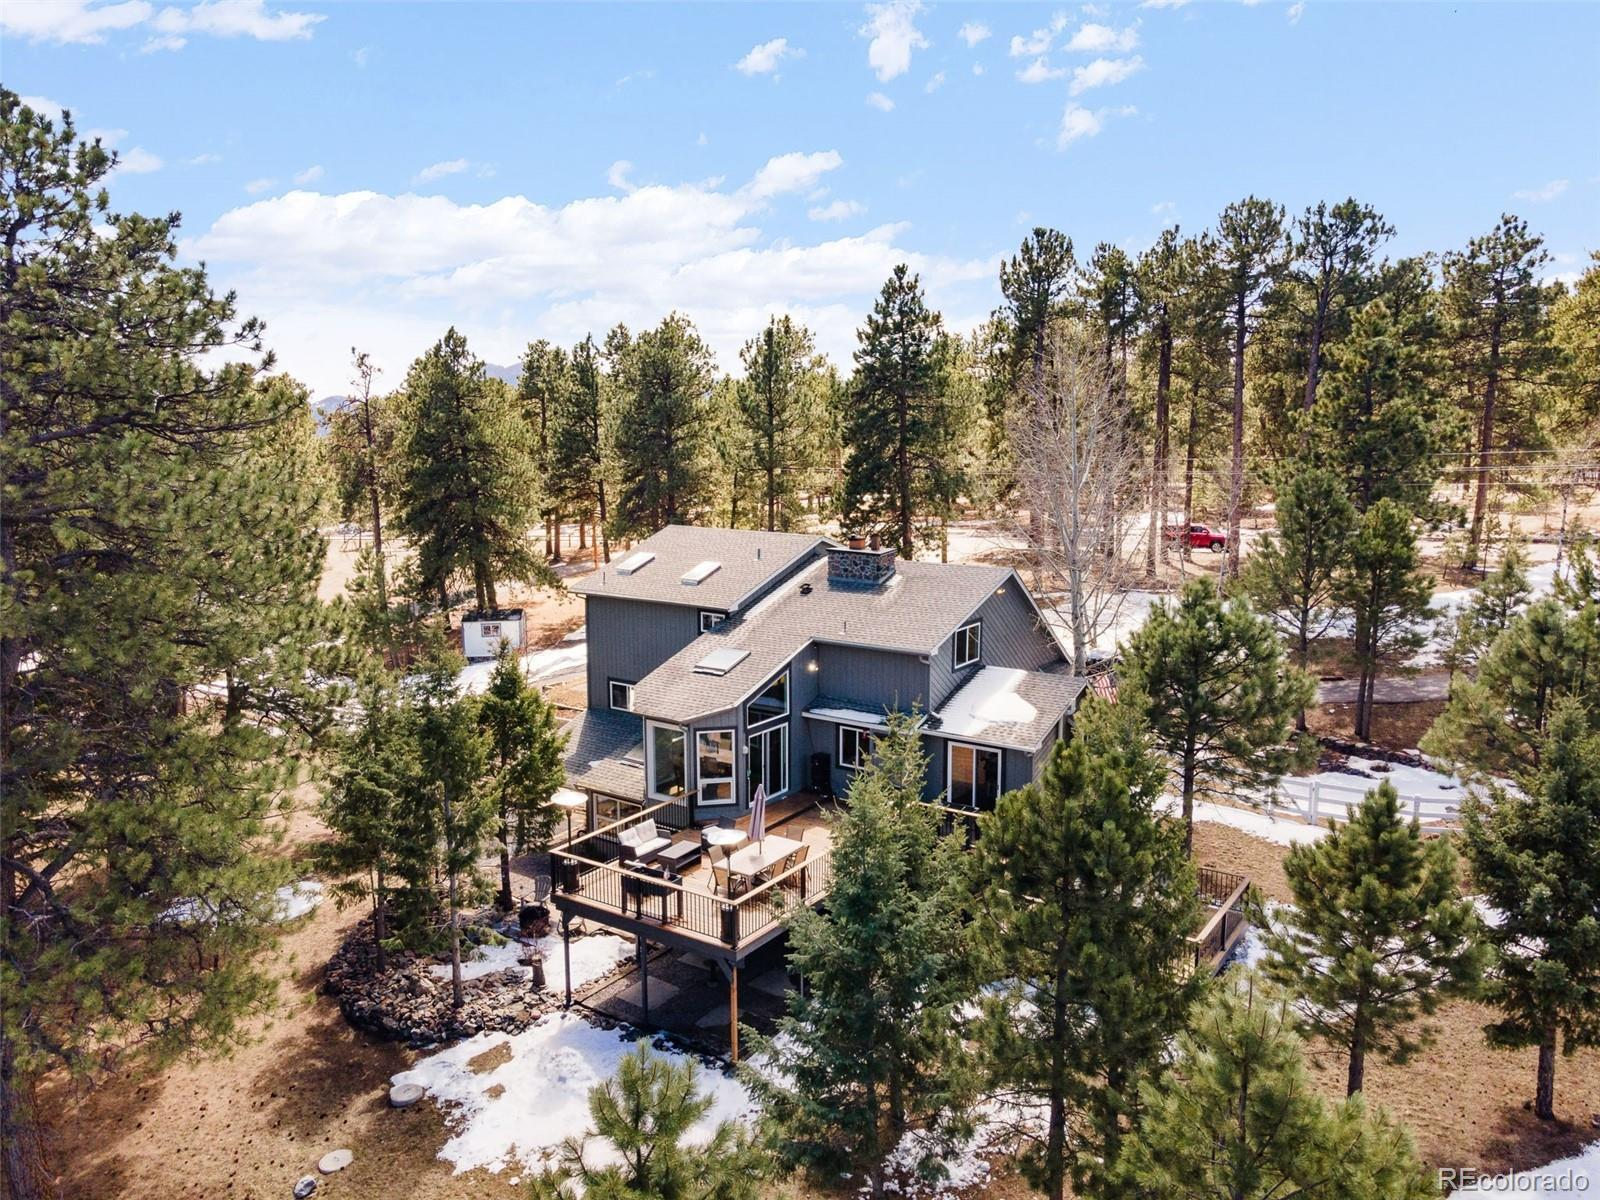 24907 Stanley Park Road, Evergreen, CO 80439 - #: 8407415